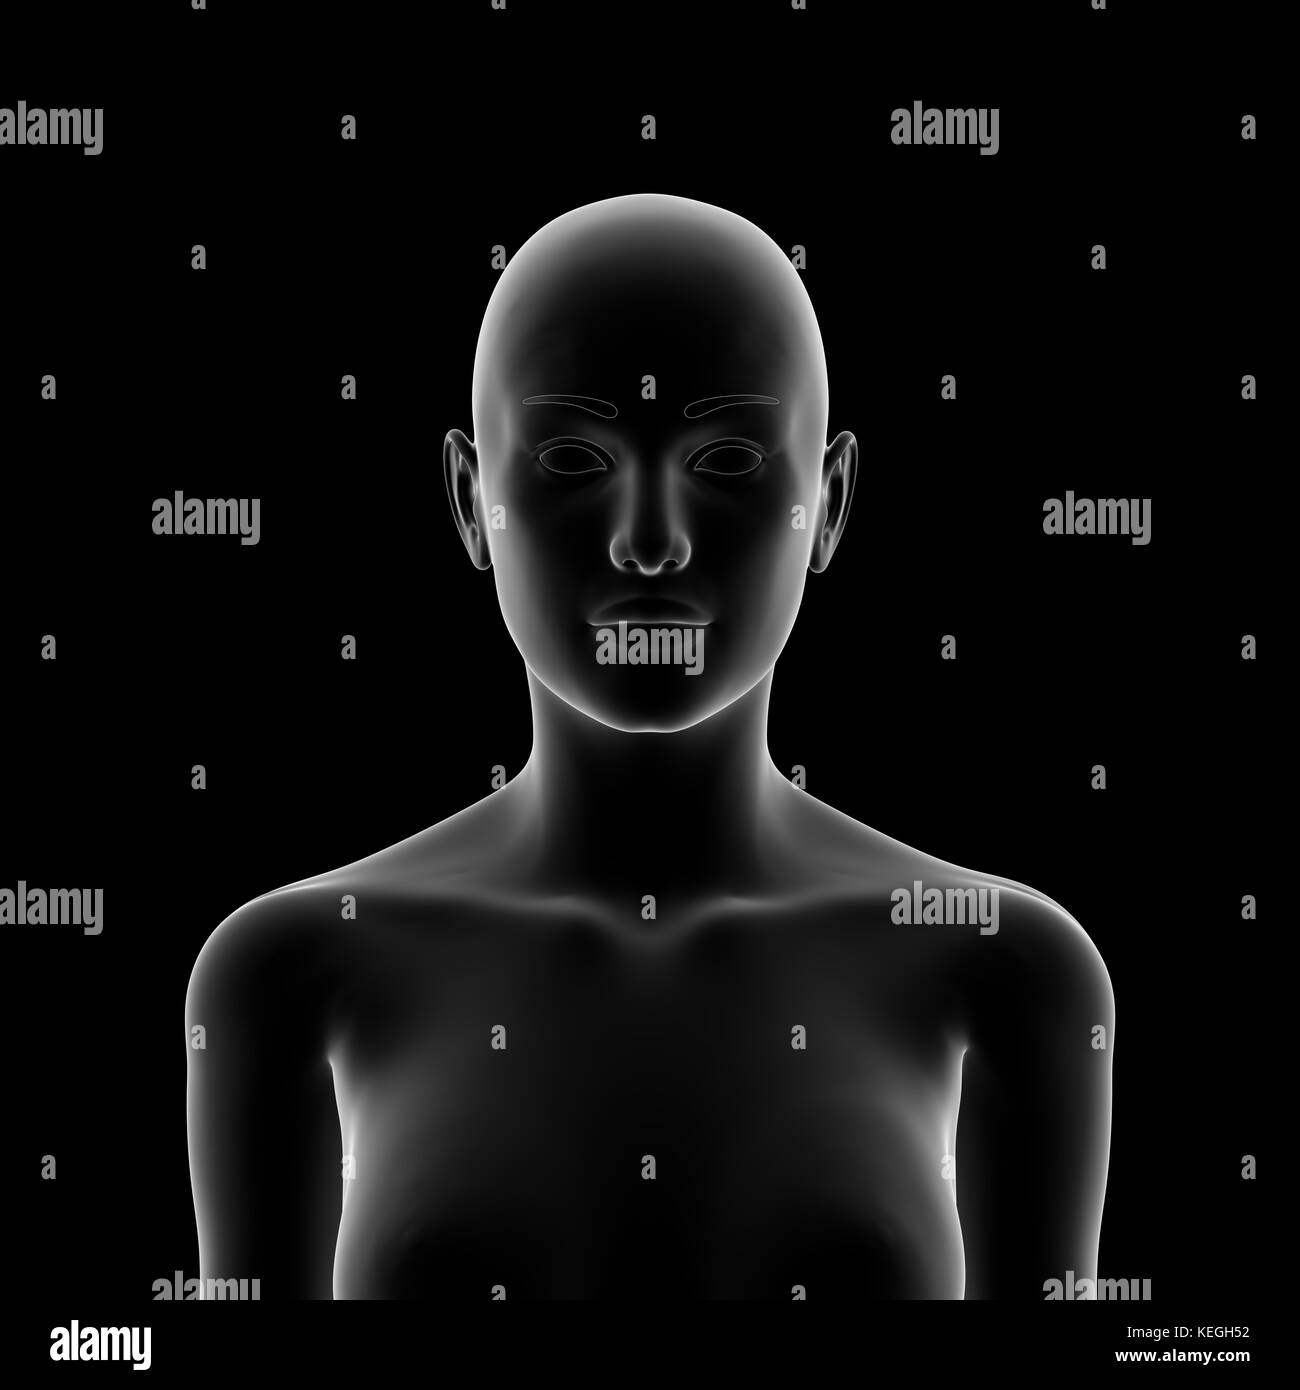 Head, Female Human Body - Stock Image